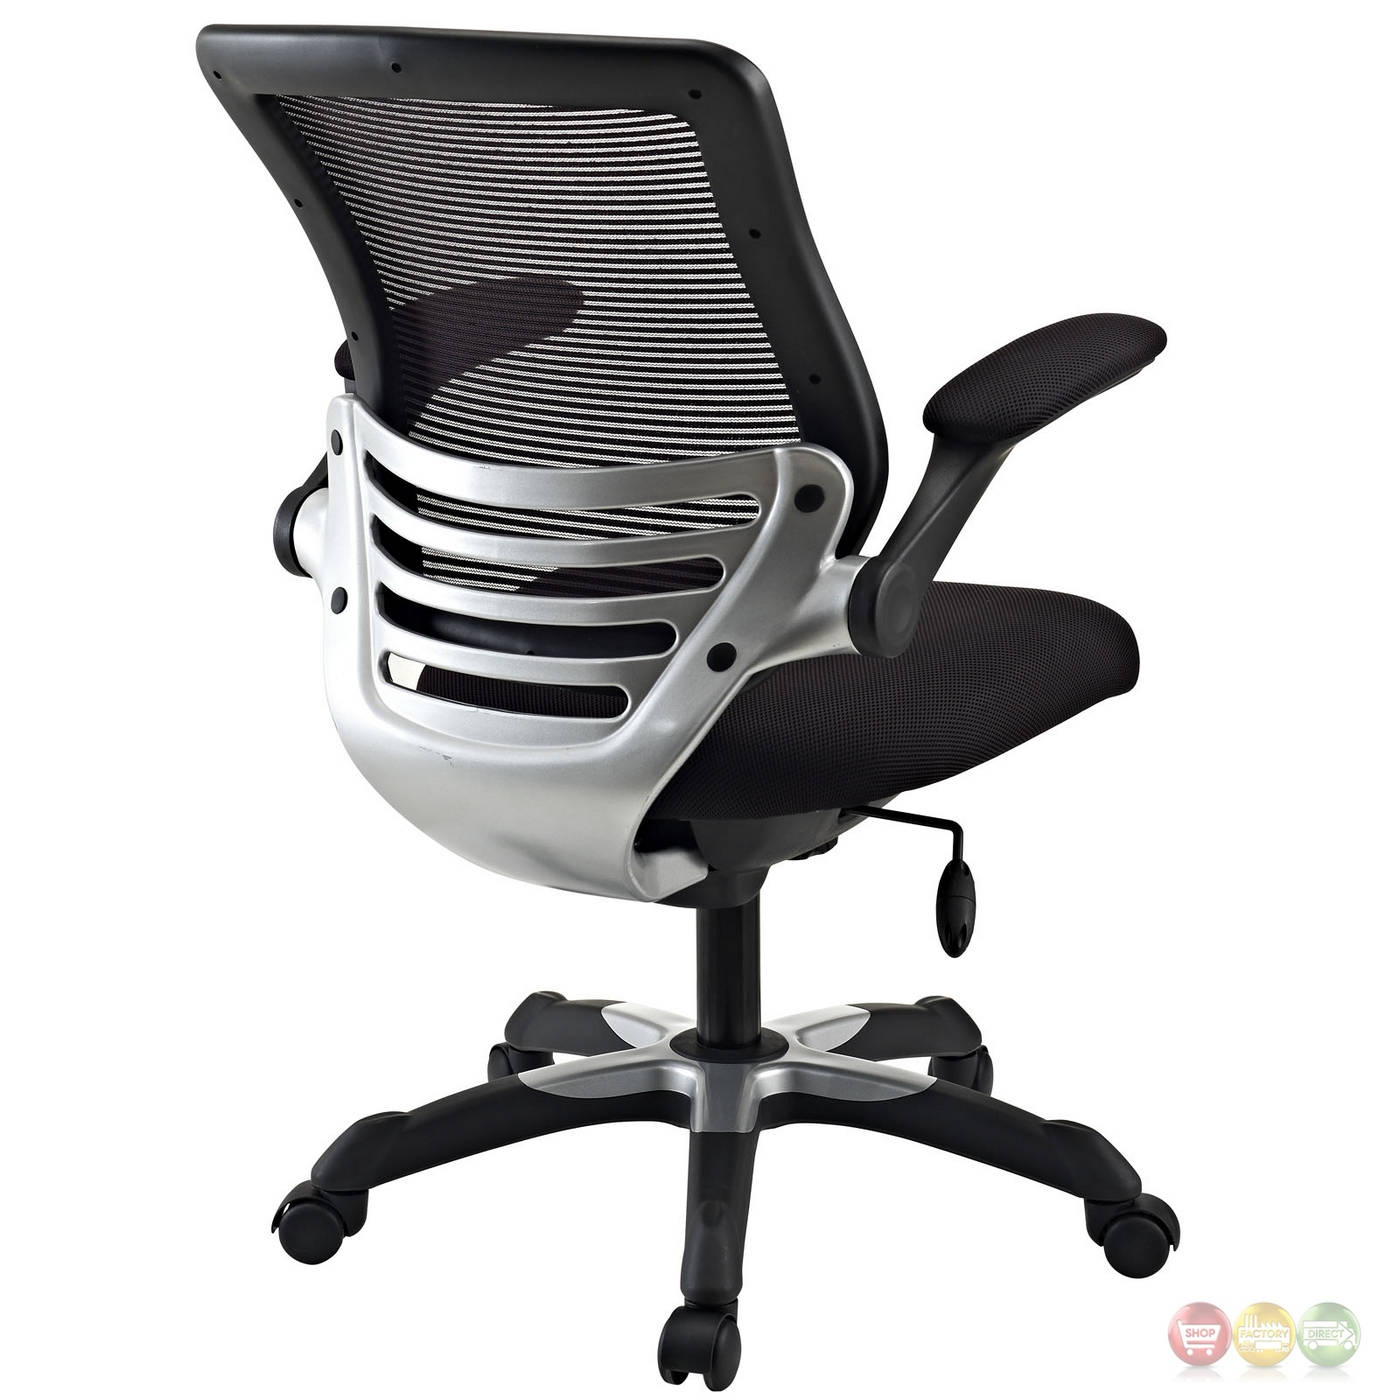 Edge Modern Adjustable Ergonomic Mesh Office Chair, Black